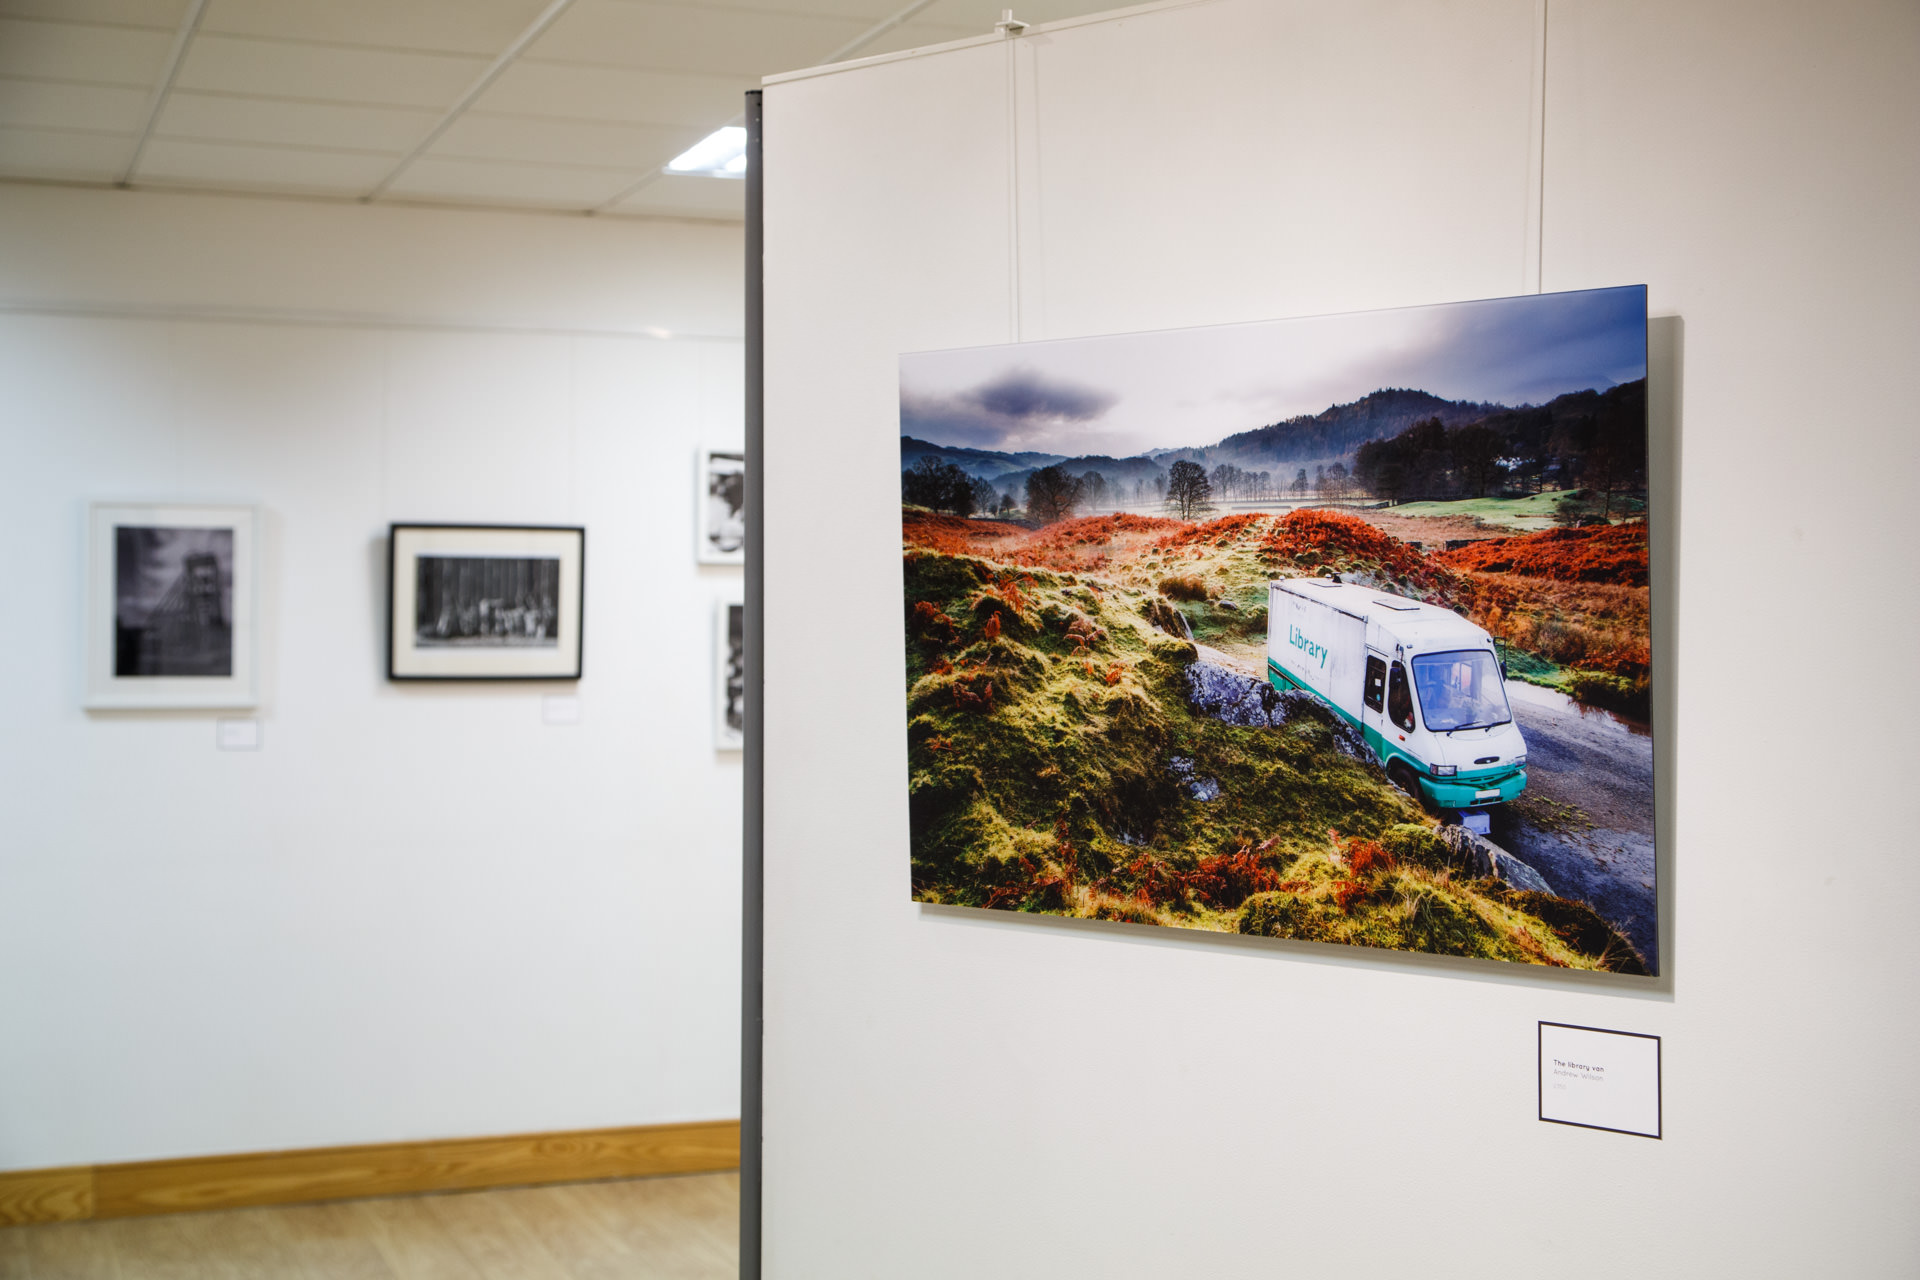 October - My photo ( The Library Van ) won first place in the Photography Open in this years  Warrington Contemporary Arts Festival . As a result I will be having my first solo show there next year.